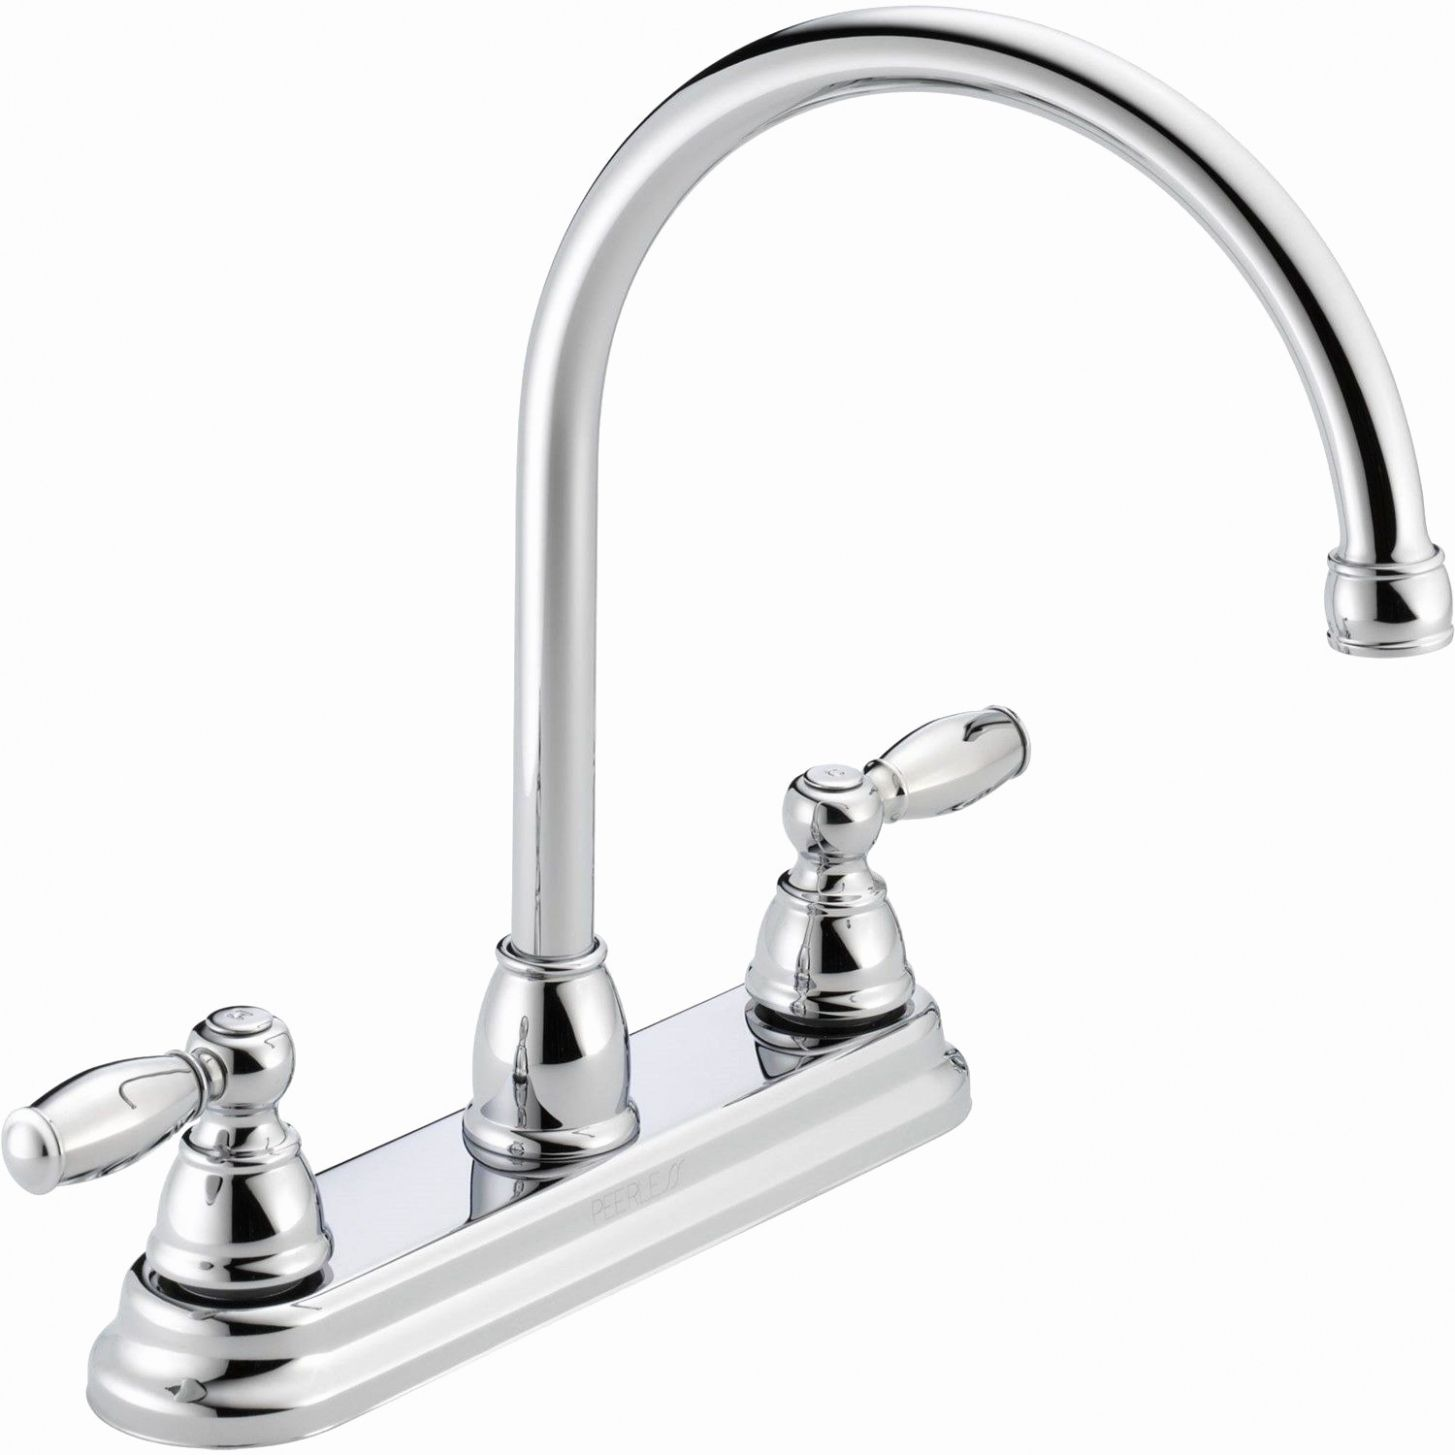 Bathroom Sink Faucets with Spray 20 Beautiful Old Moen ...